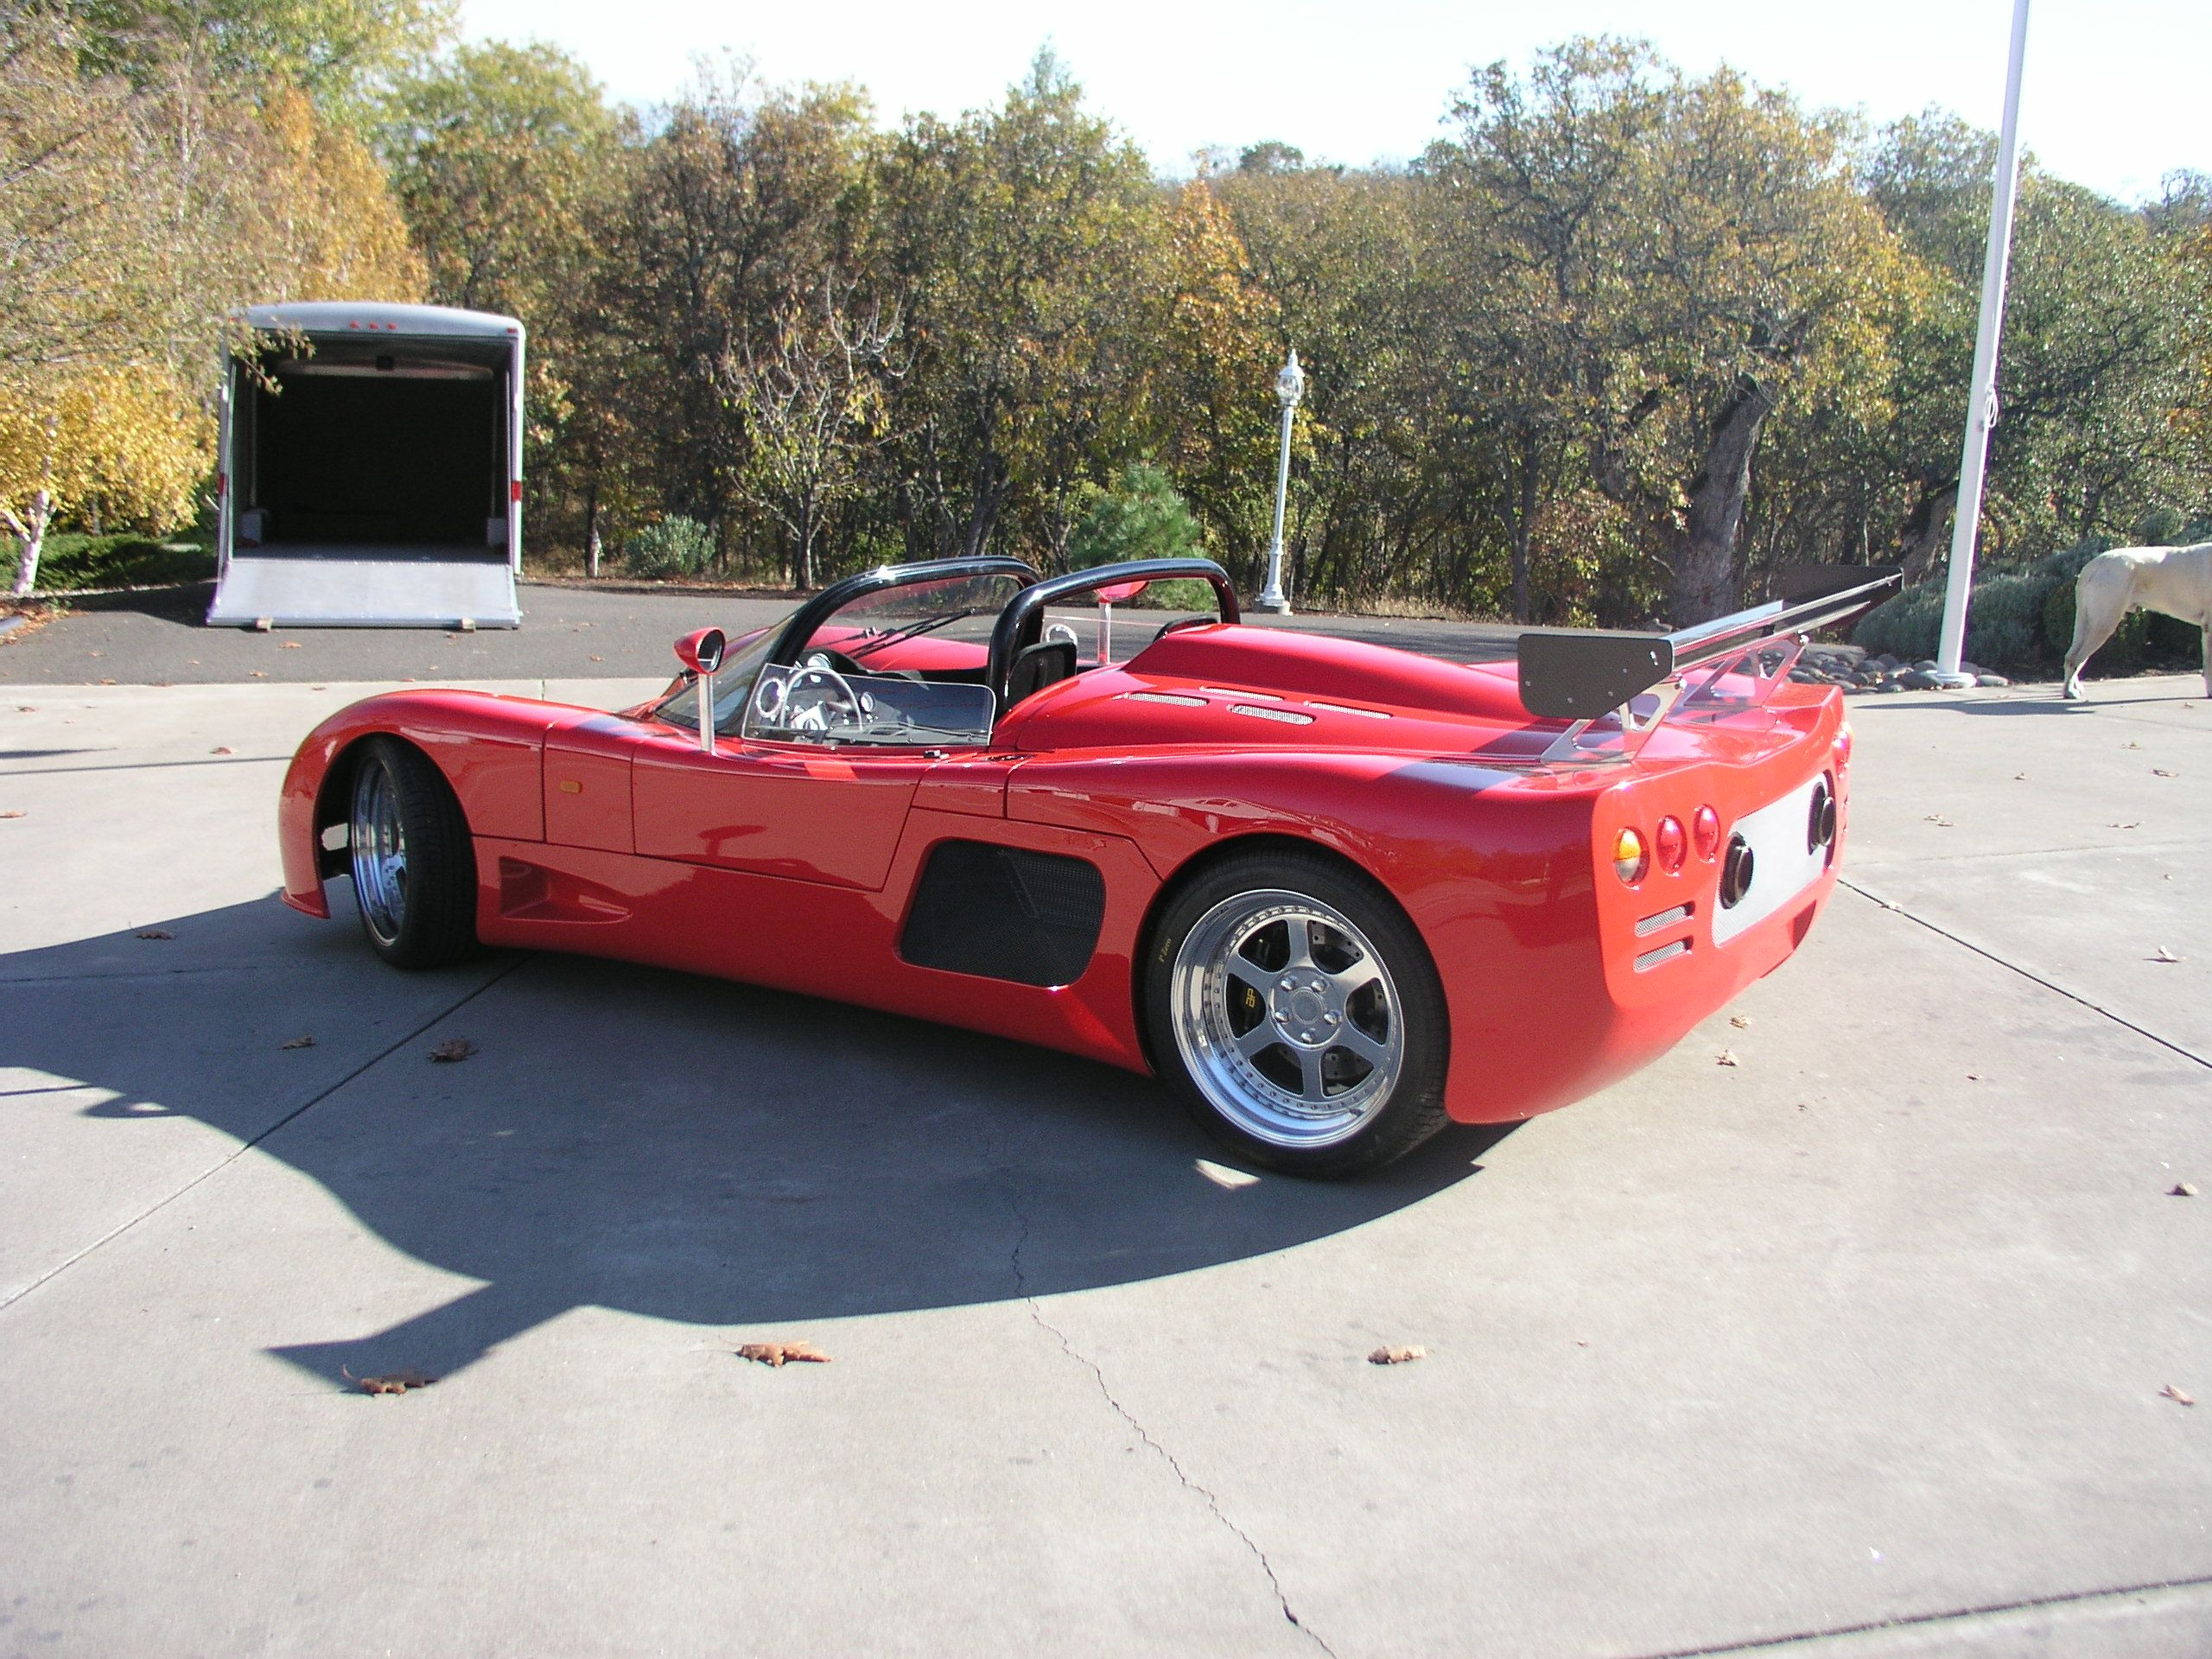 The first Ultima can am built by Brammo